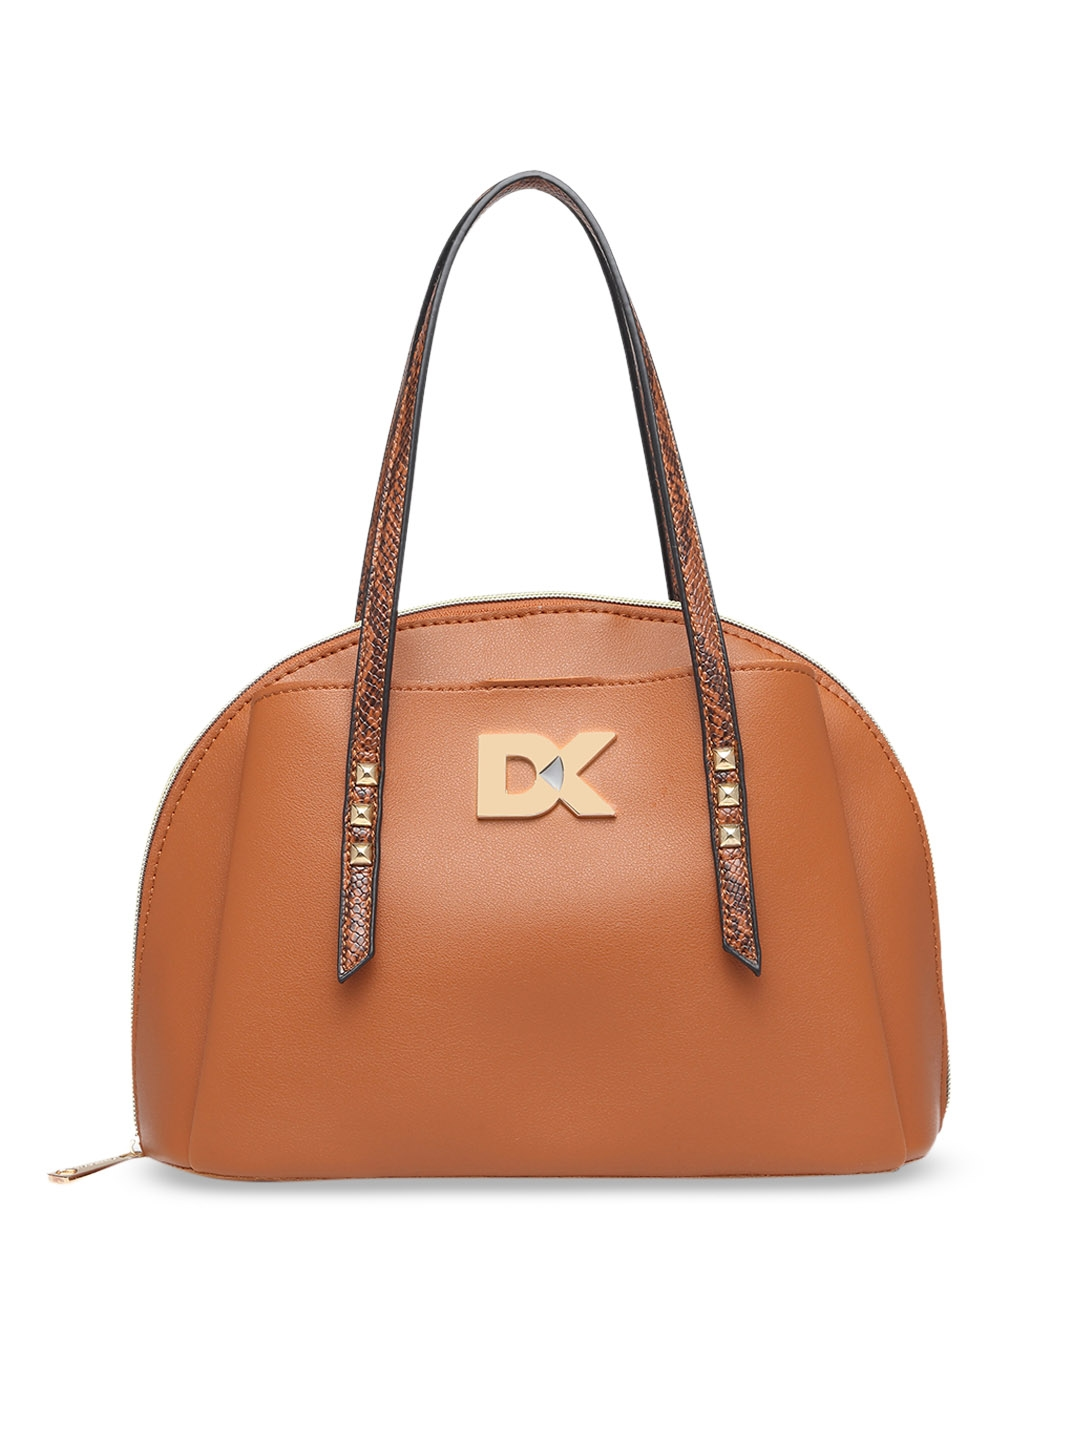 Diana Korr Tan Brown Solid Handheld Bag